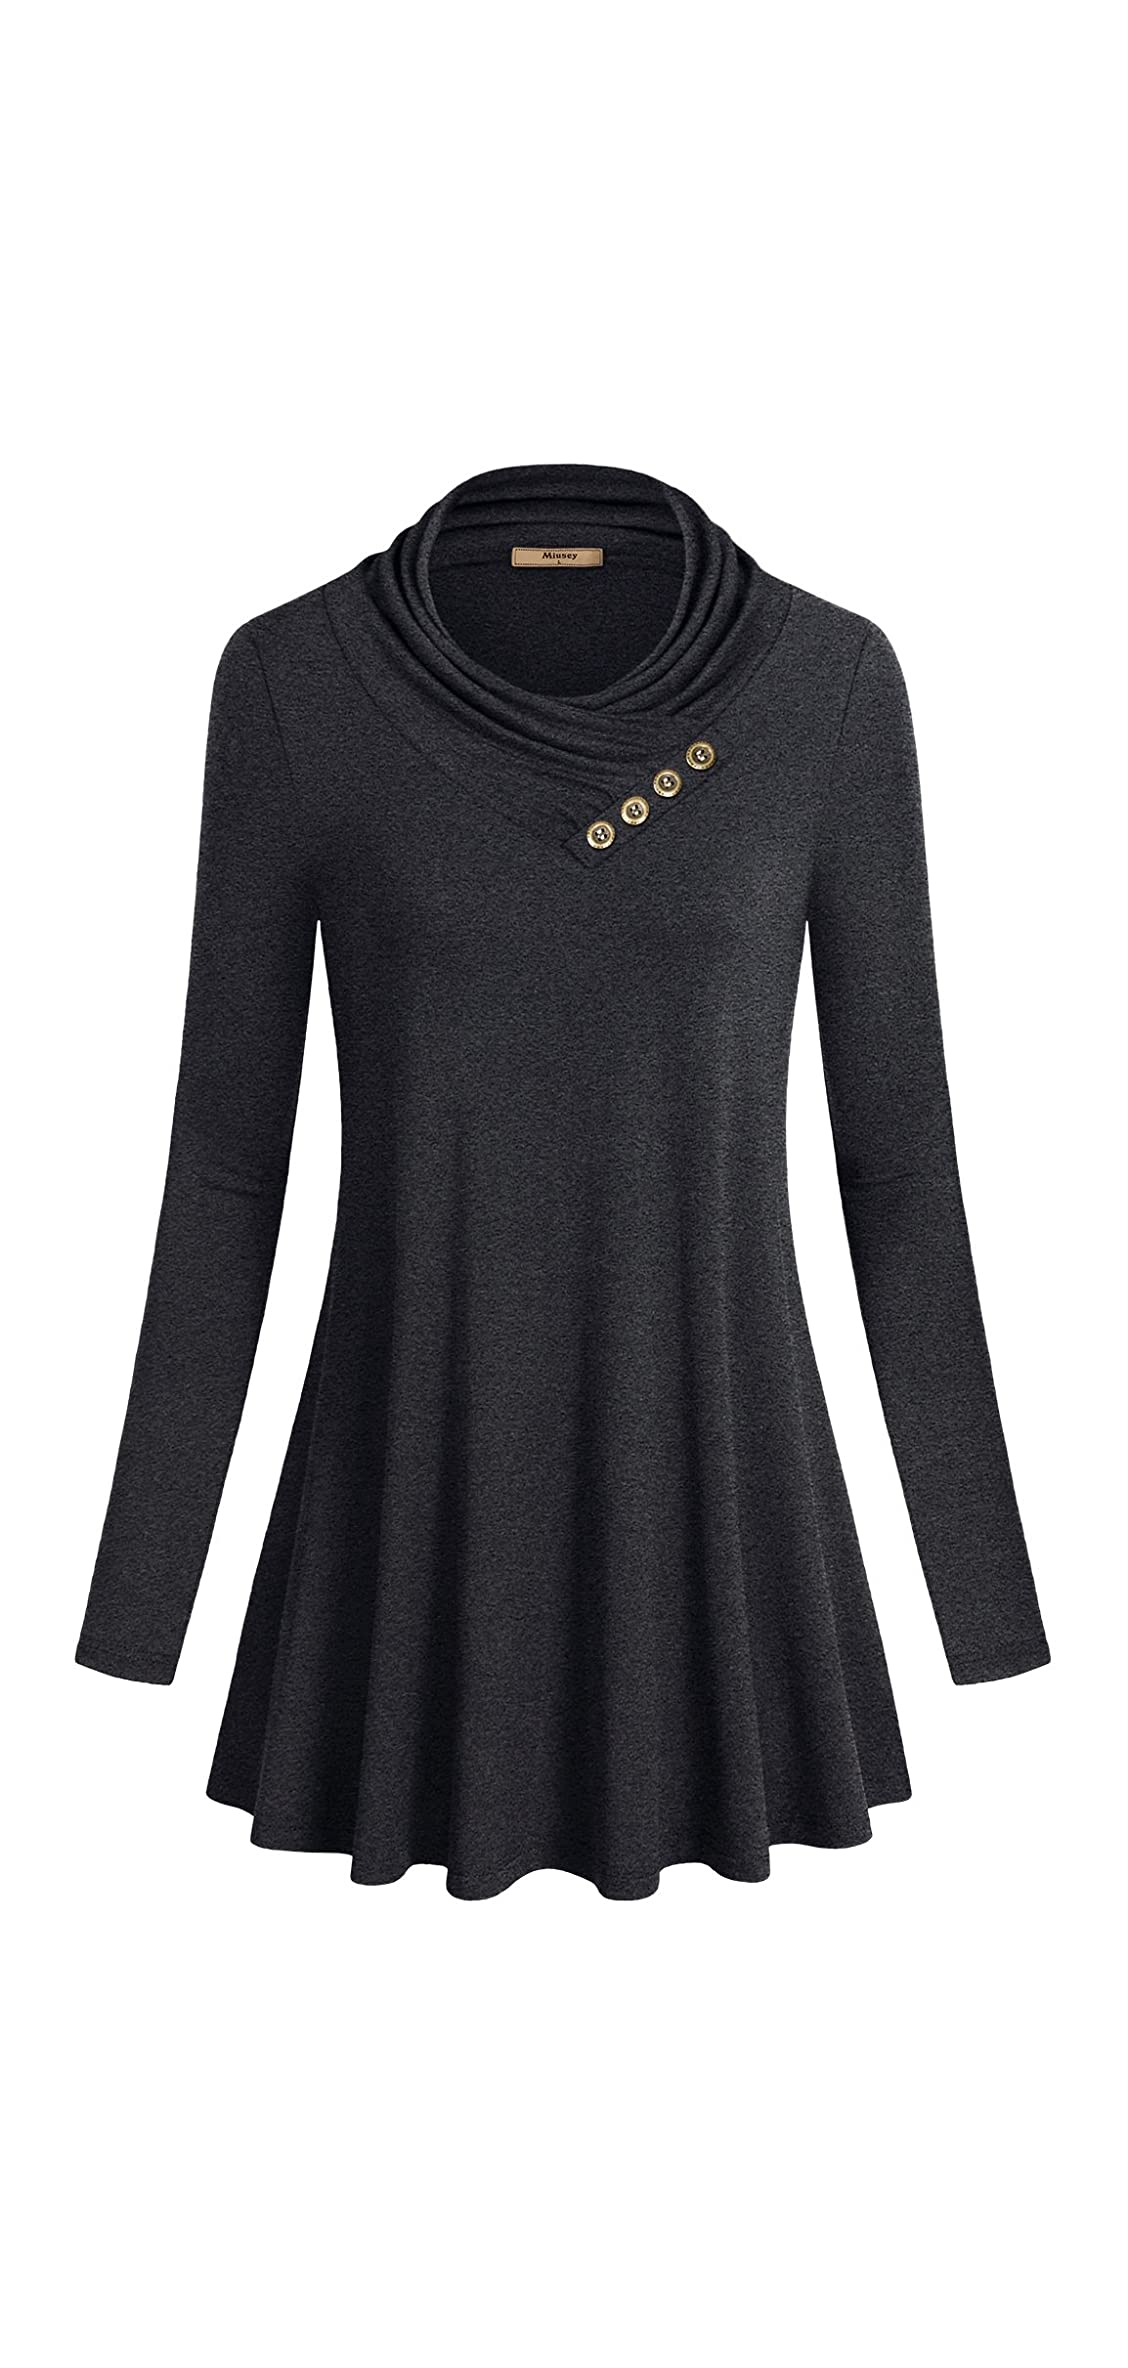 Women's Long Sleeve Cowl Neck Form Fitting Casual Tunic